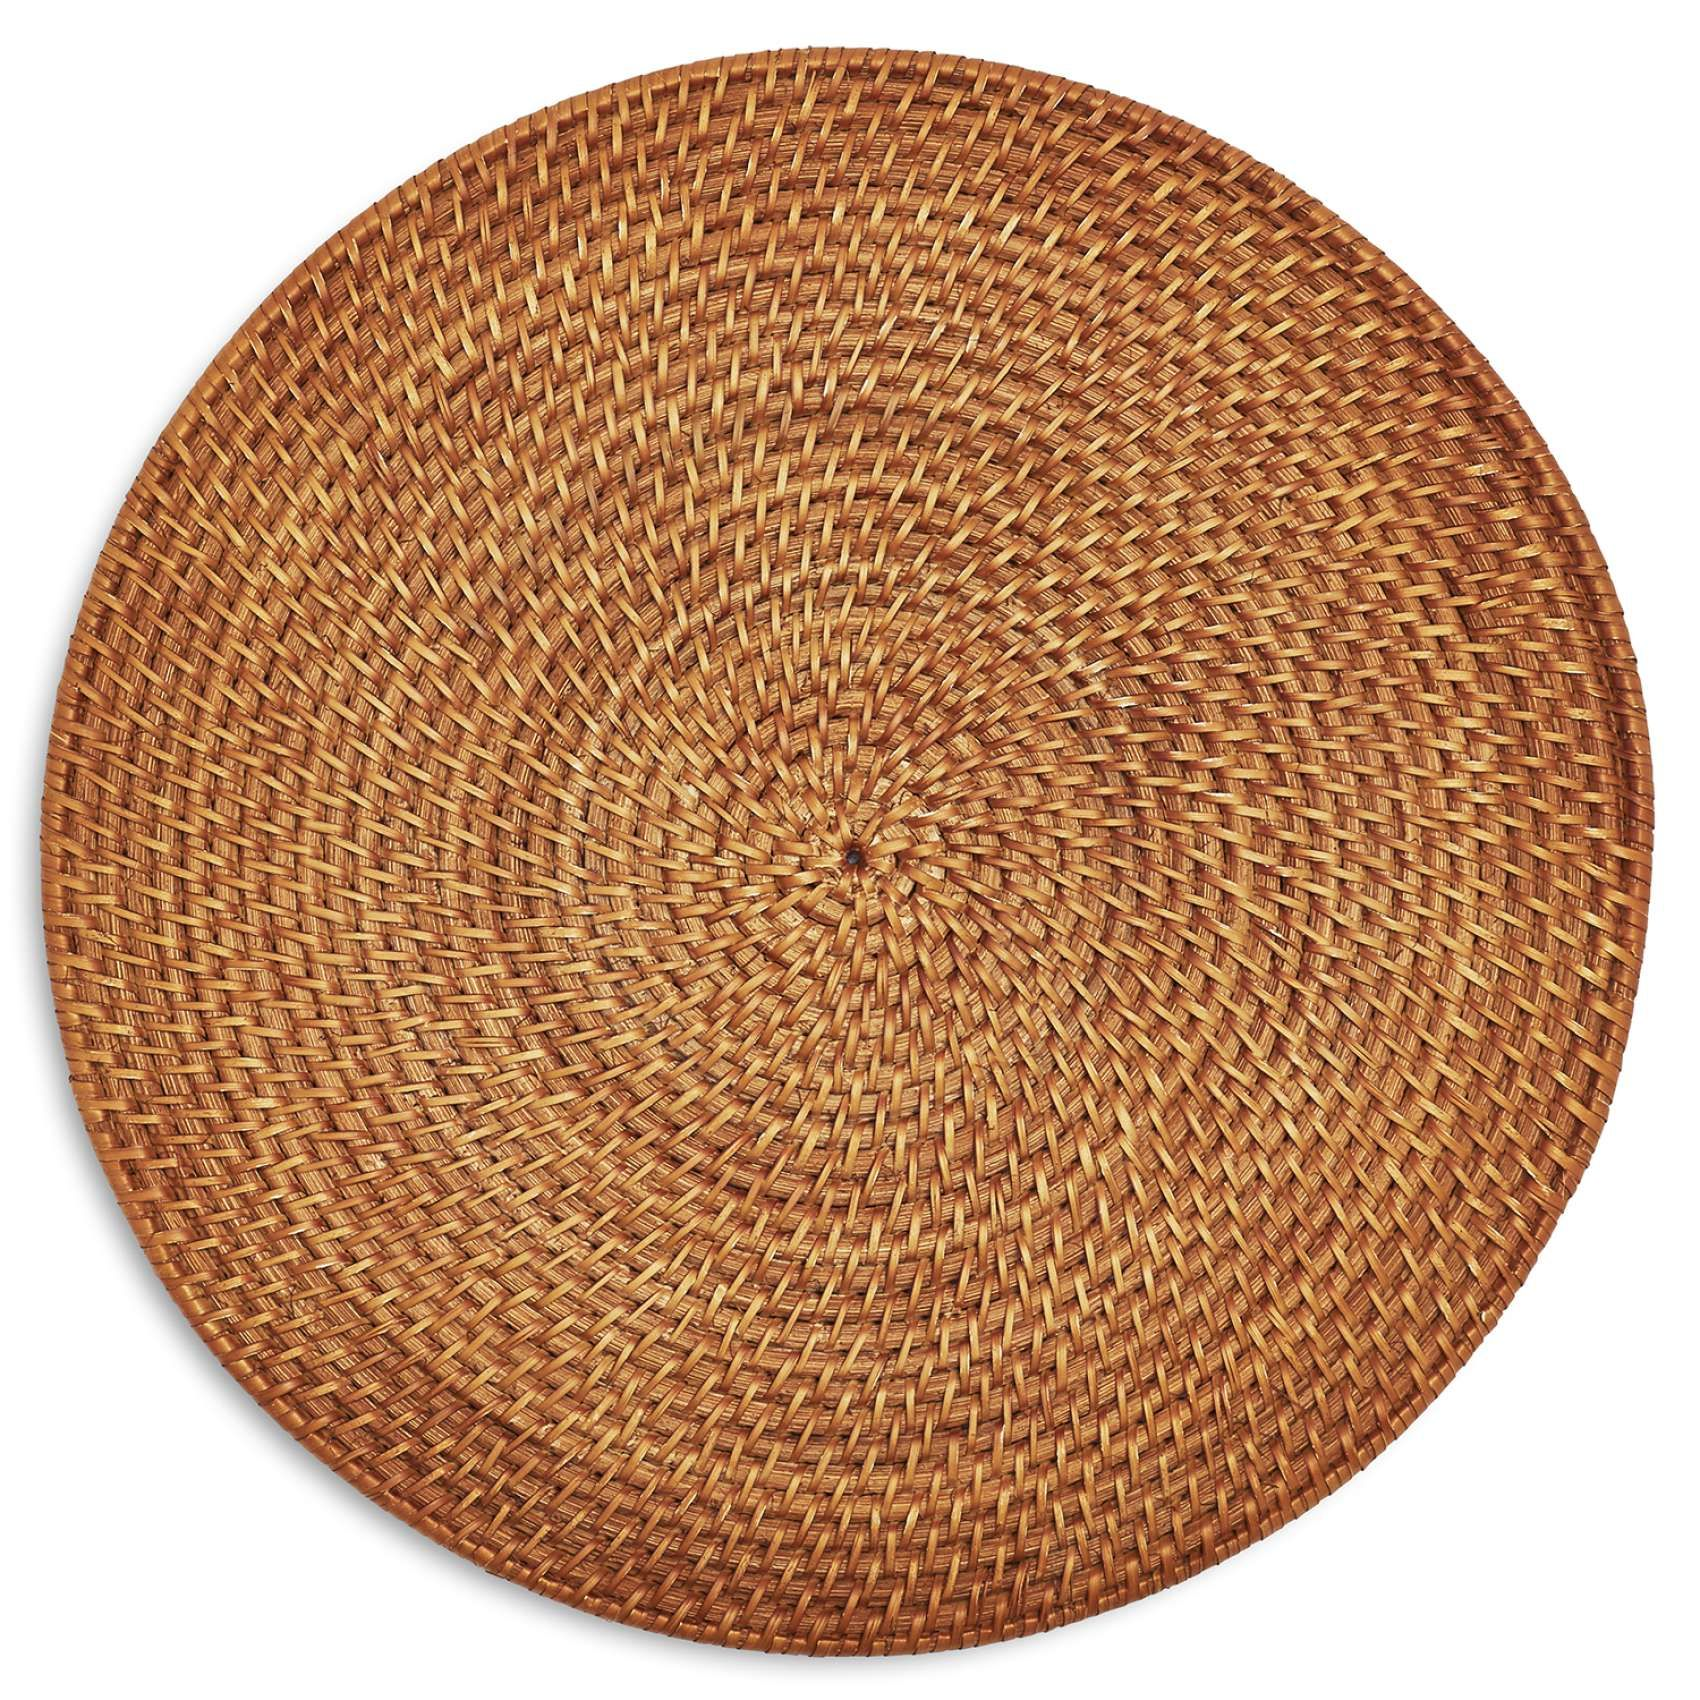 Rattan Placemat 14 Sur La Table Placemats Dining Table Placemats Rattan